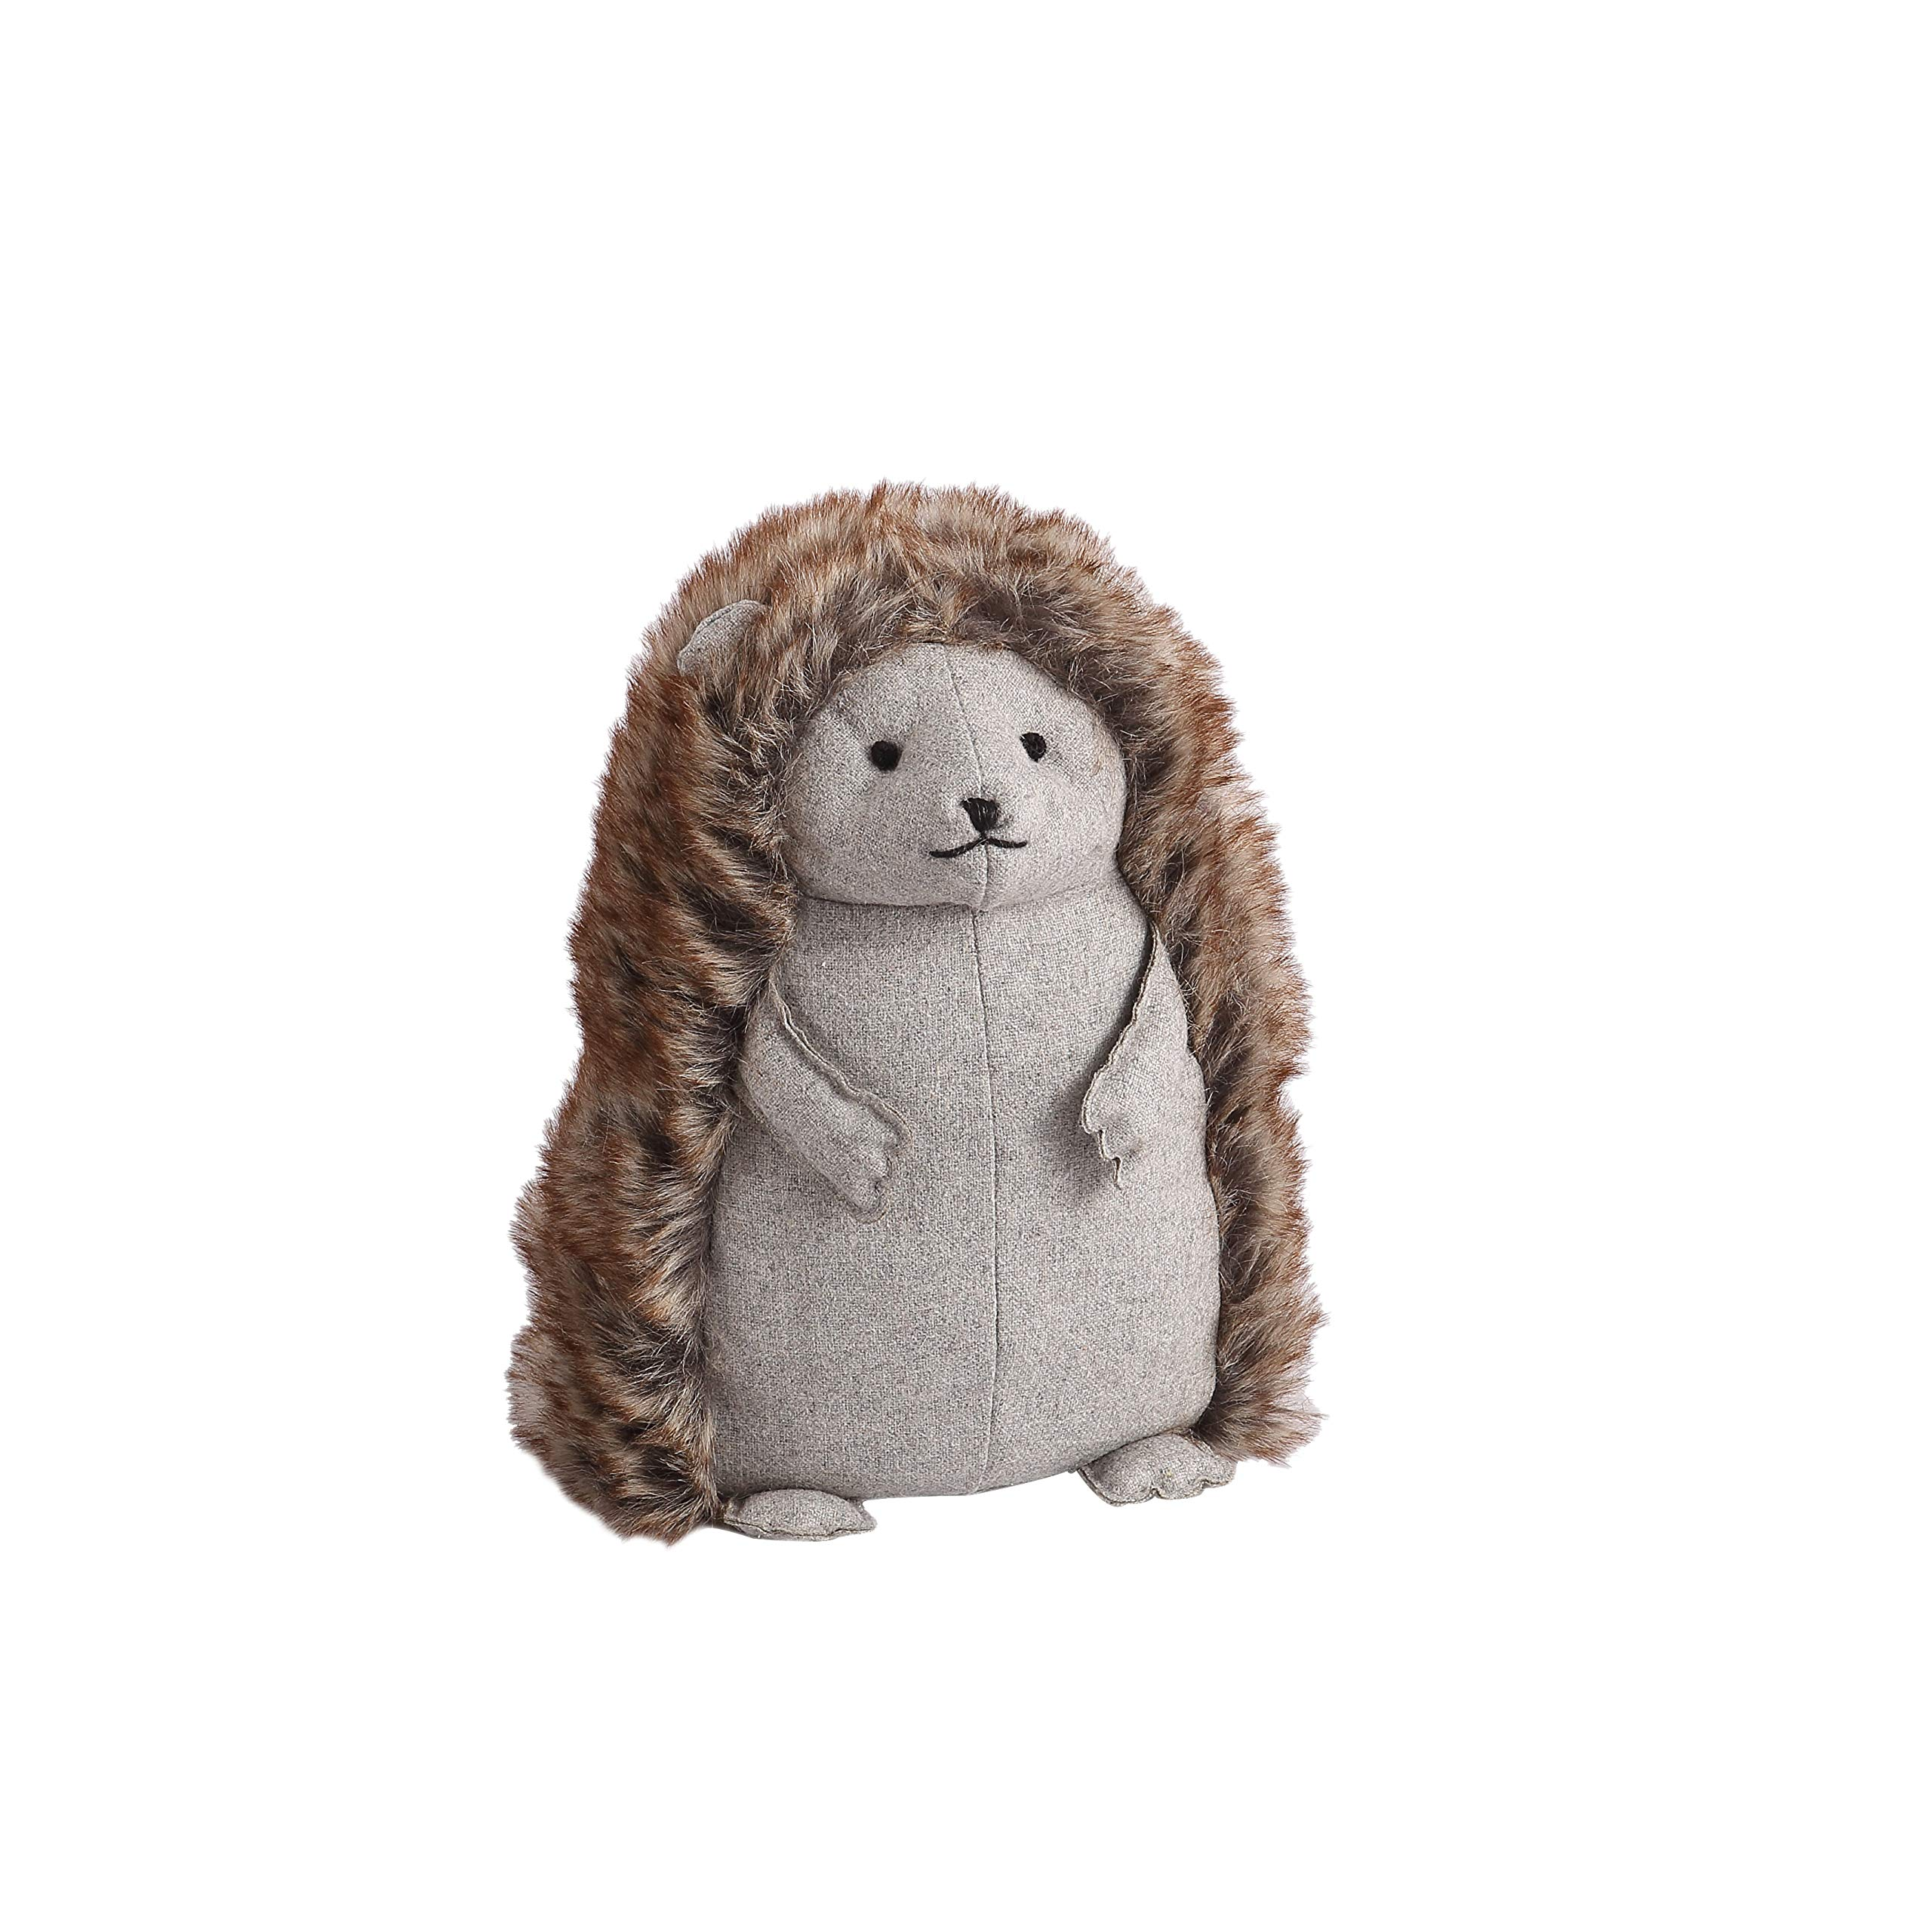 Decorative Door Stopper by Morgan Home – Available in Many Adorable Animals and Styles – Durable, Subtle Home Decor Easily Matches Measures Approx. 11 x 5.5 x 5.5 Inches (Grey Hedgehog)